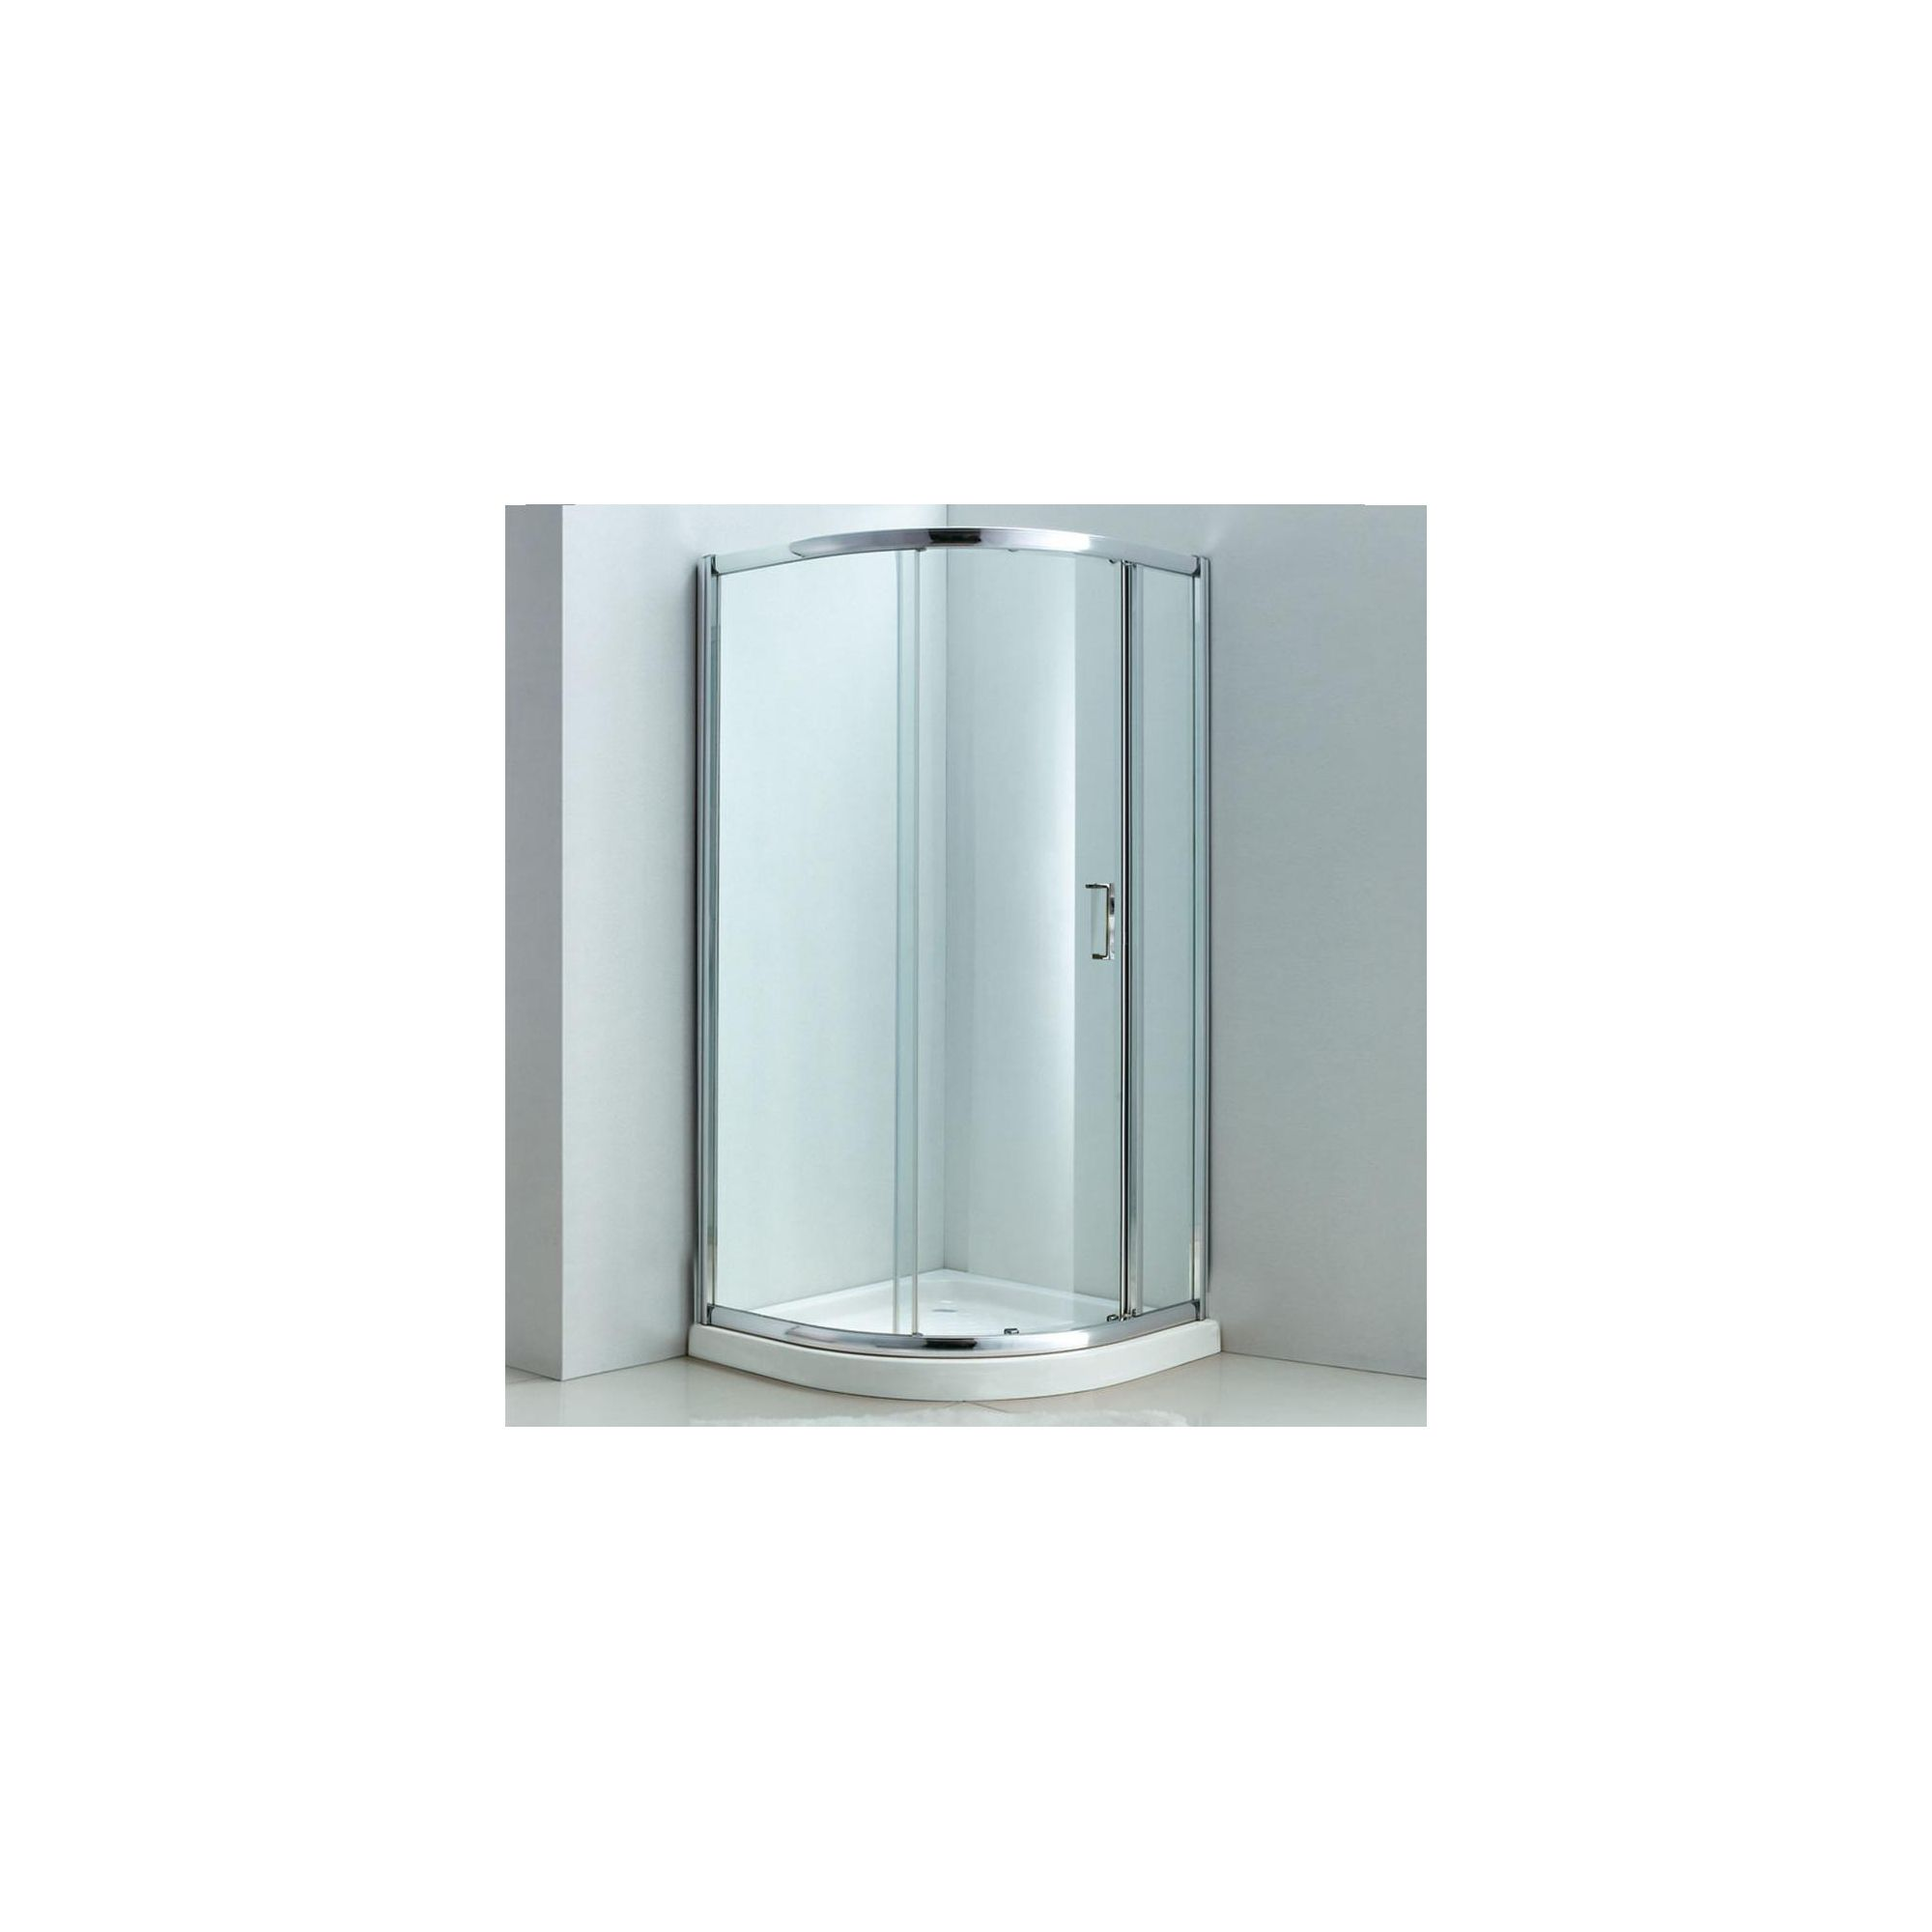 Duchy Style Single Quadrant Door Shower Enclosure, 900mm x 900mm, 6mm Glass, Low Profile Tray at Tescos Direct